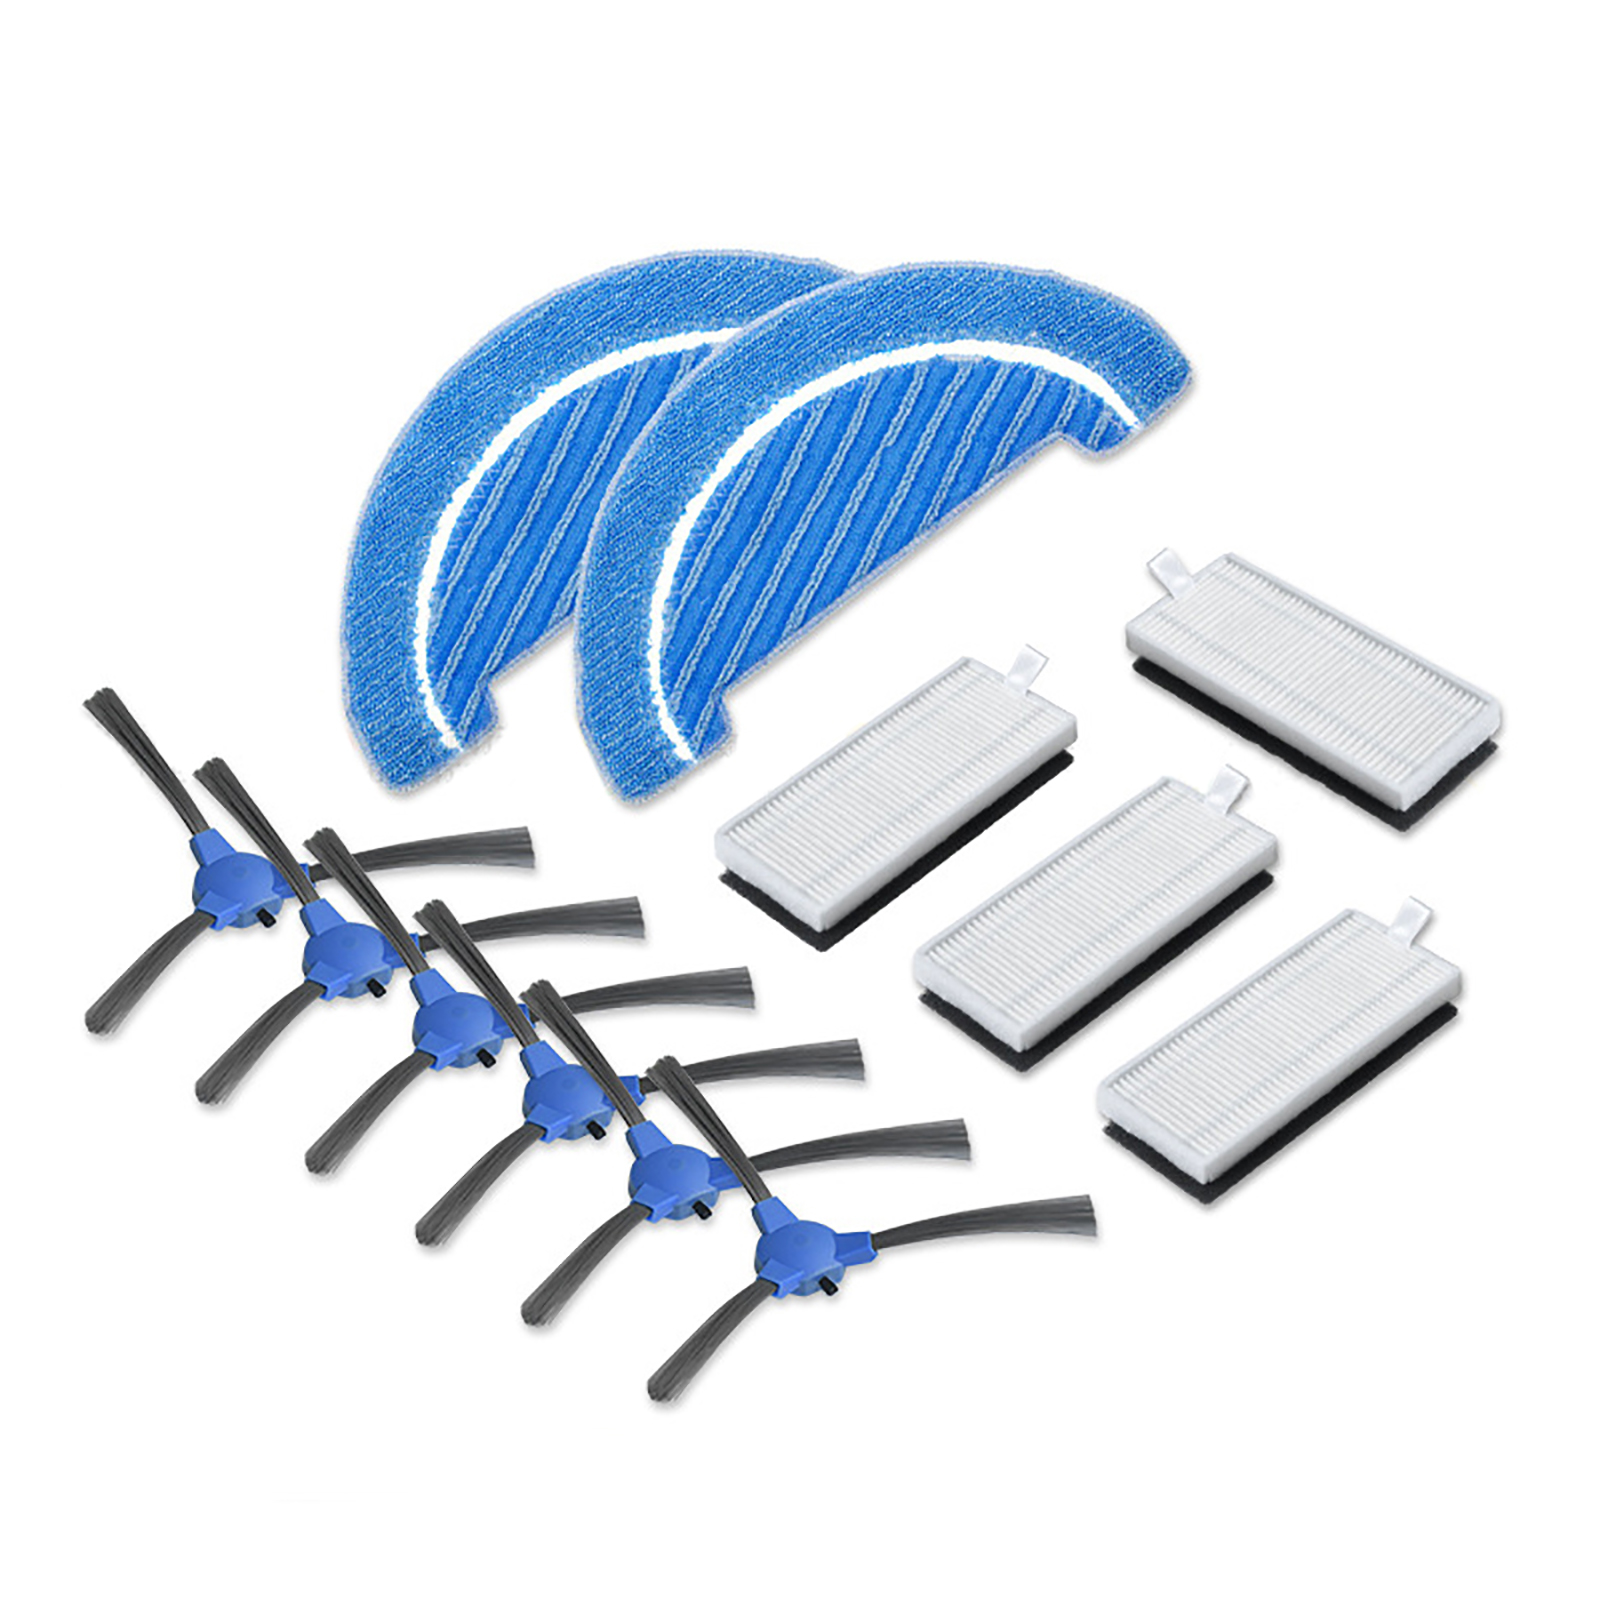 6pcs Side Brushes + 4pcs Filters + 2pcs Cloth For Conga 1090 Robot Vacuum Cleaner Accessories